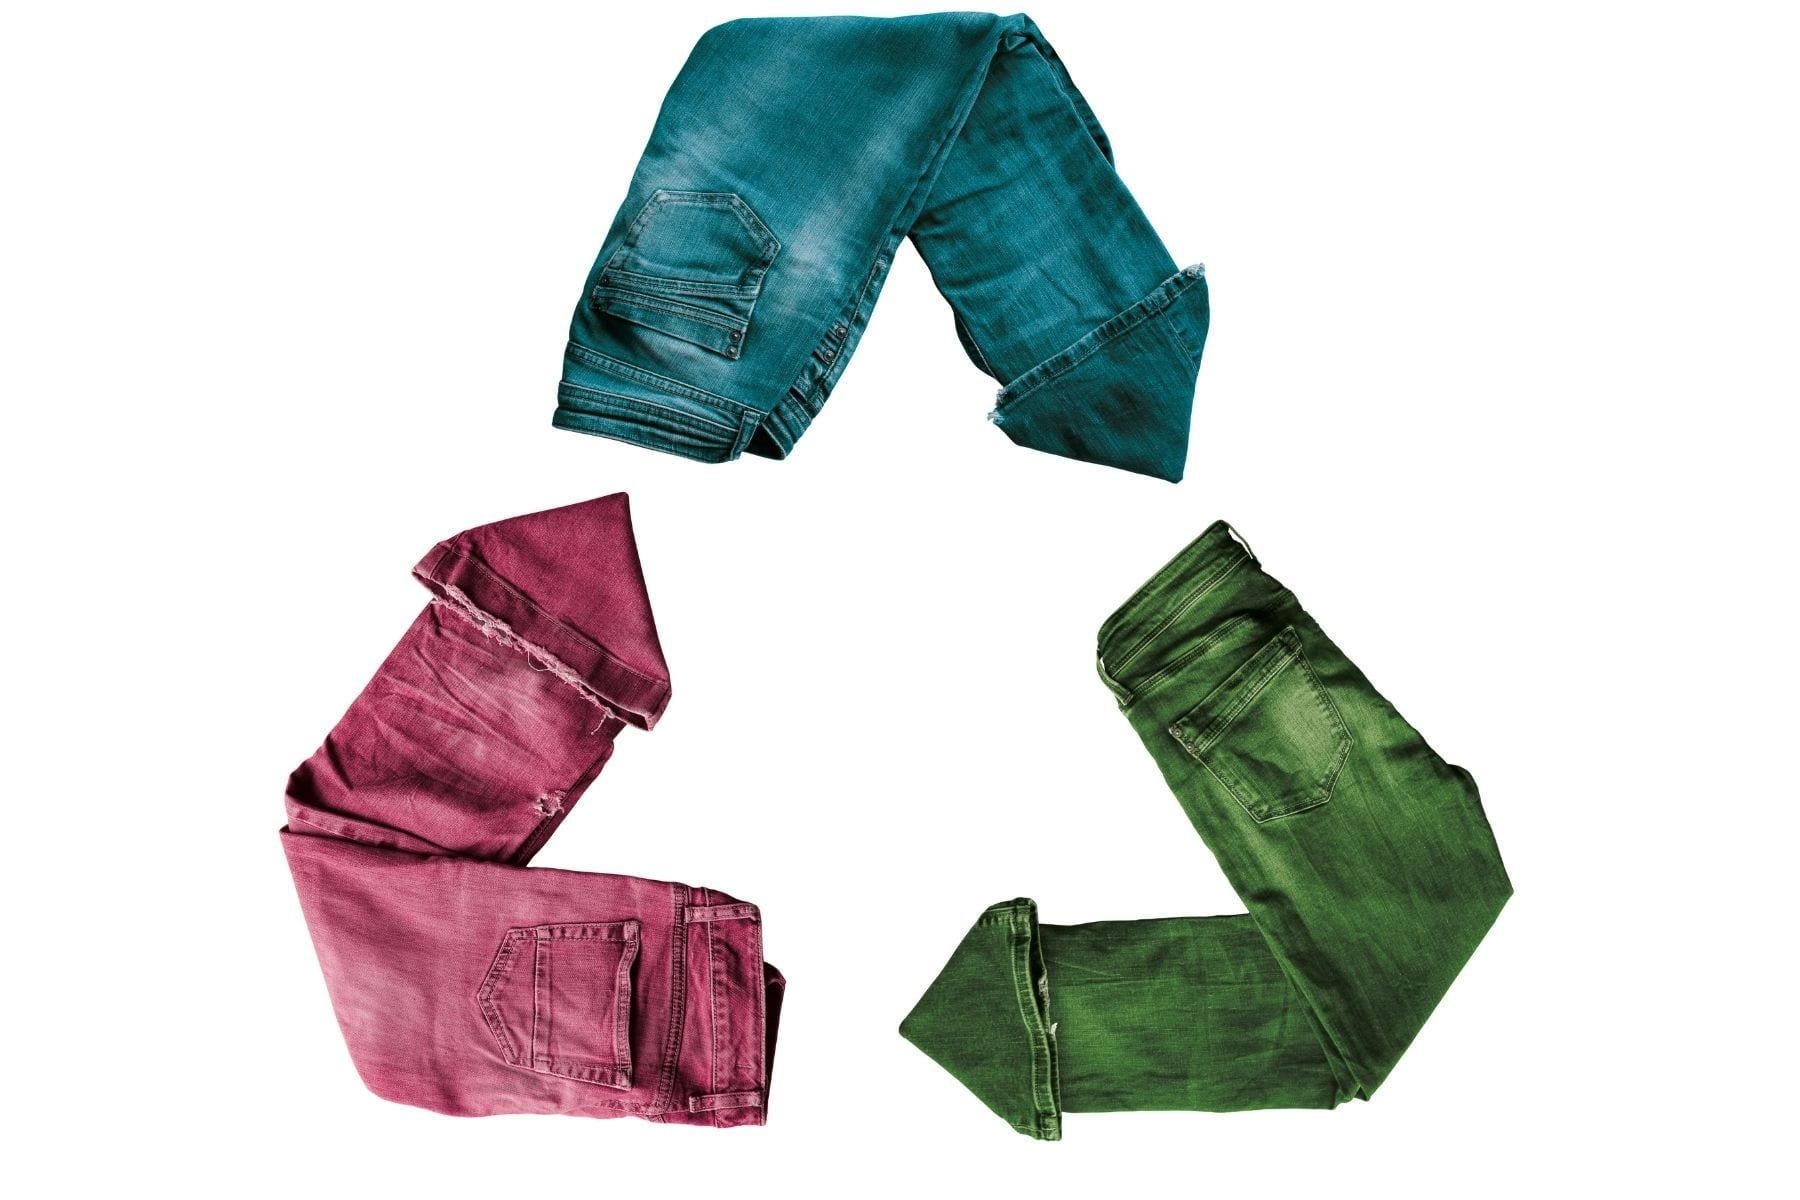 Three pairs of jeans laid on the ground to form the recycle symbol.